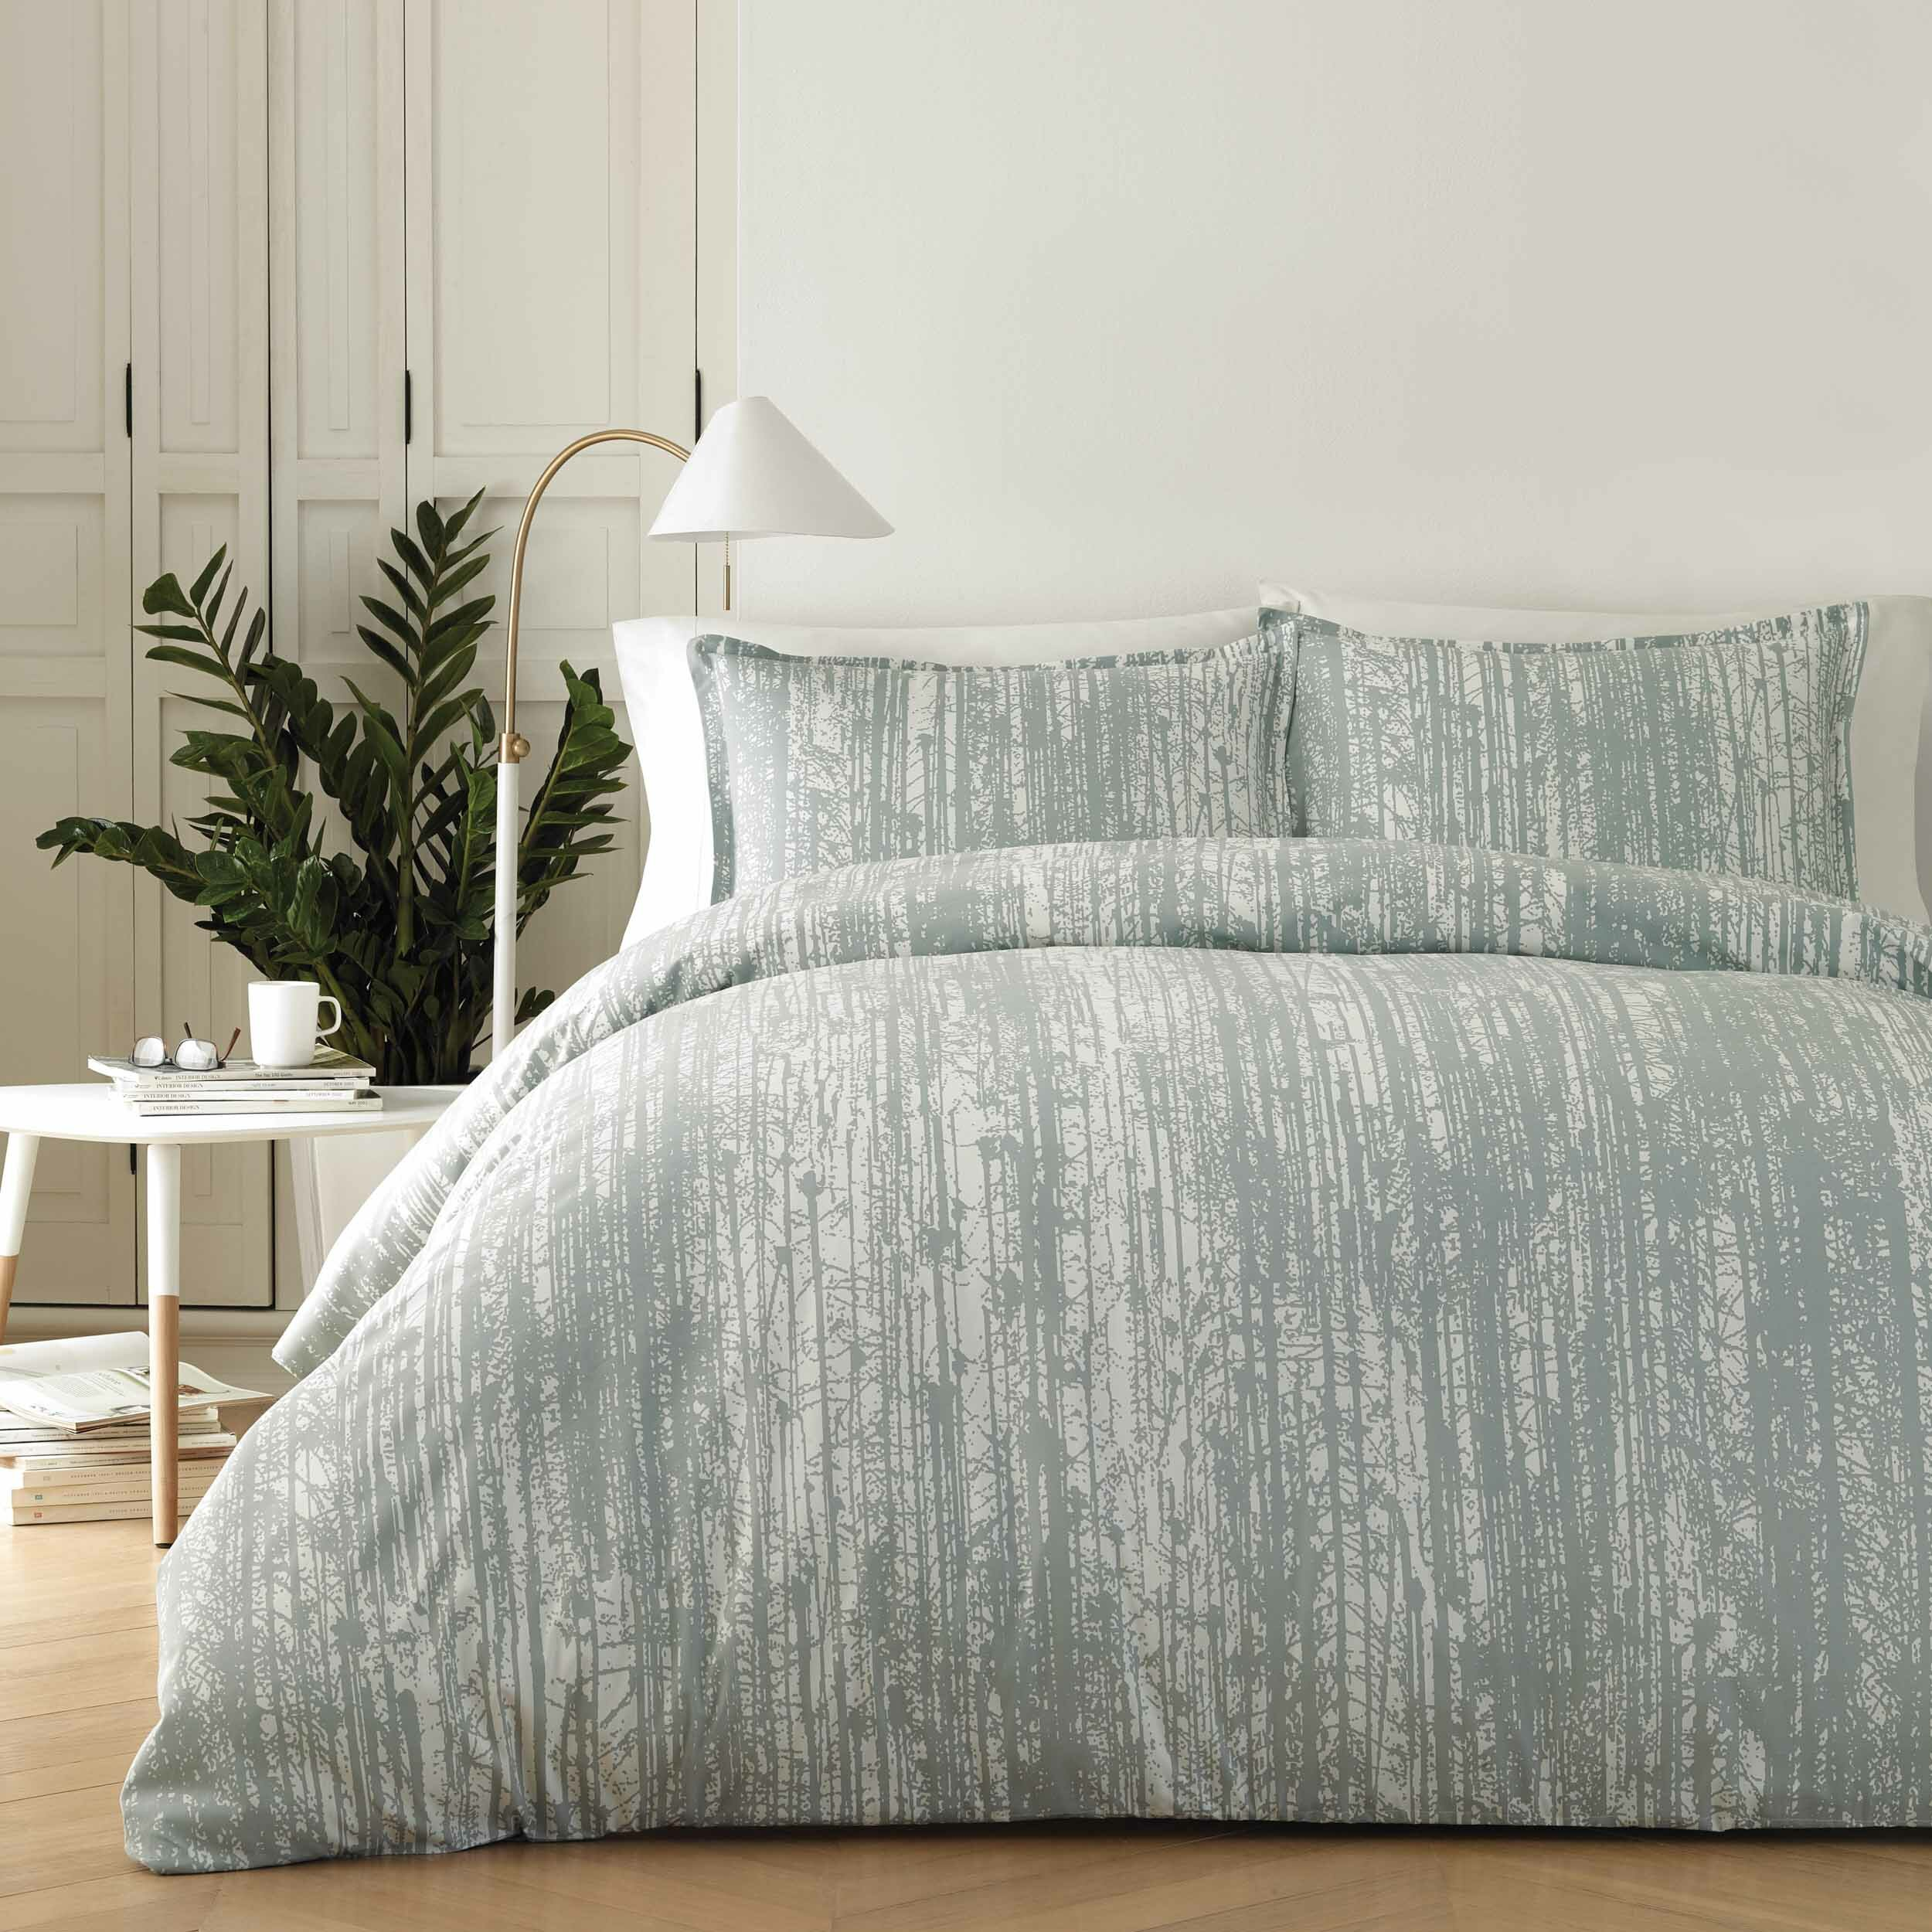 oversized piece home chic shipping dearly free and bath set bedding silver overfilled overstock linen product comforter today